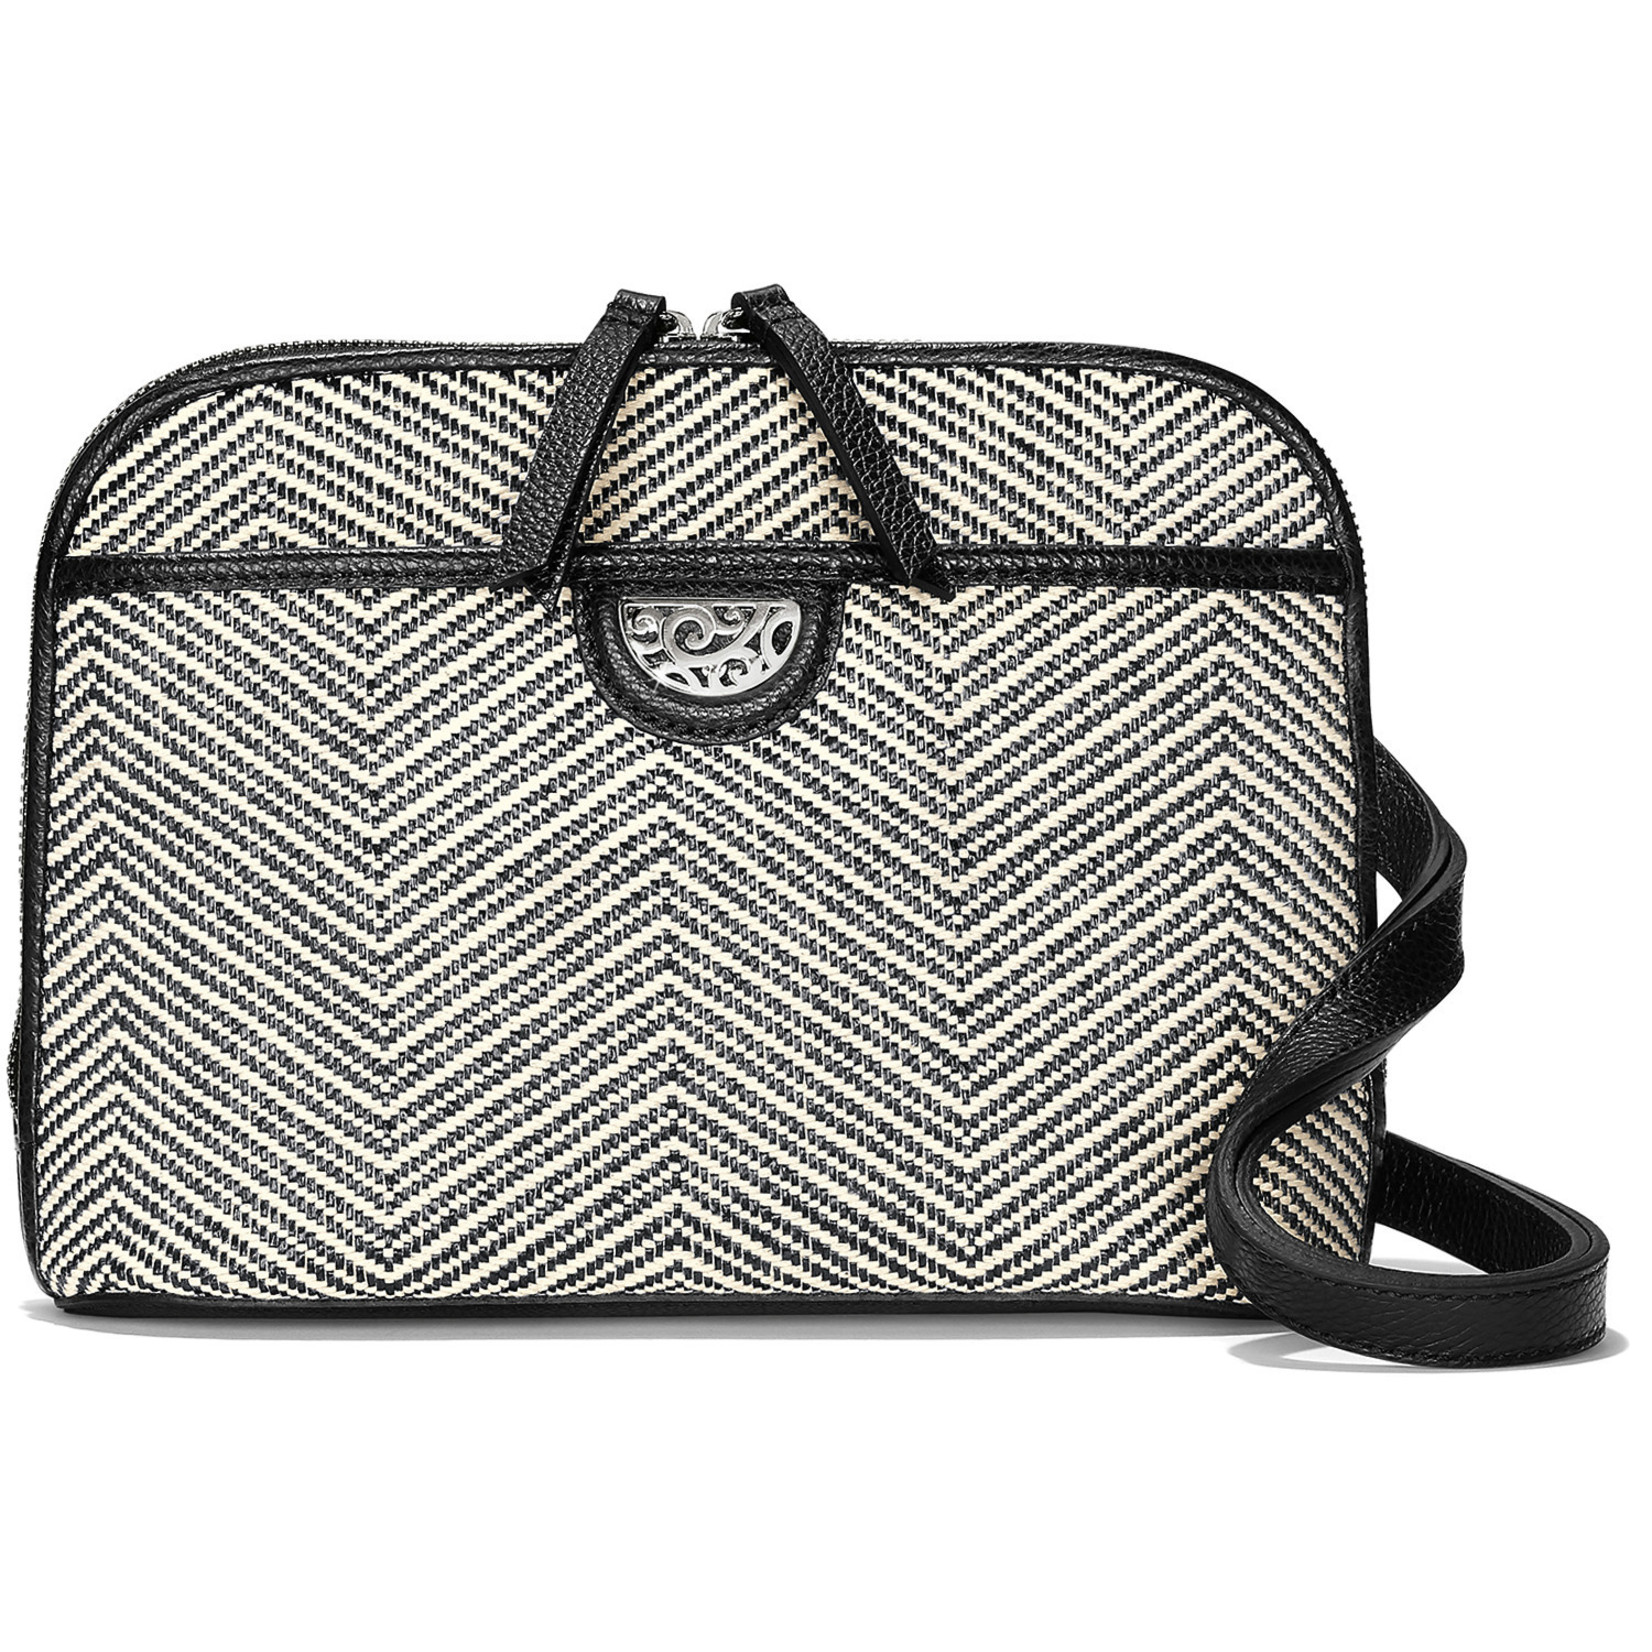 Brighton Jojo Domed Chevron Organizer Black-White